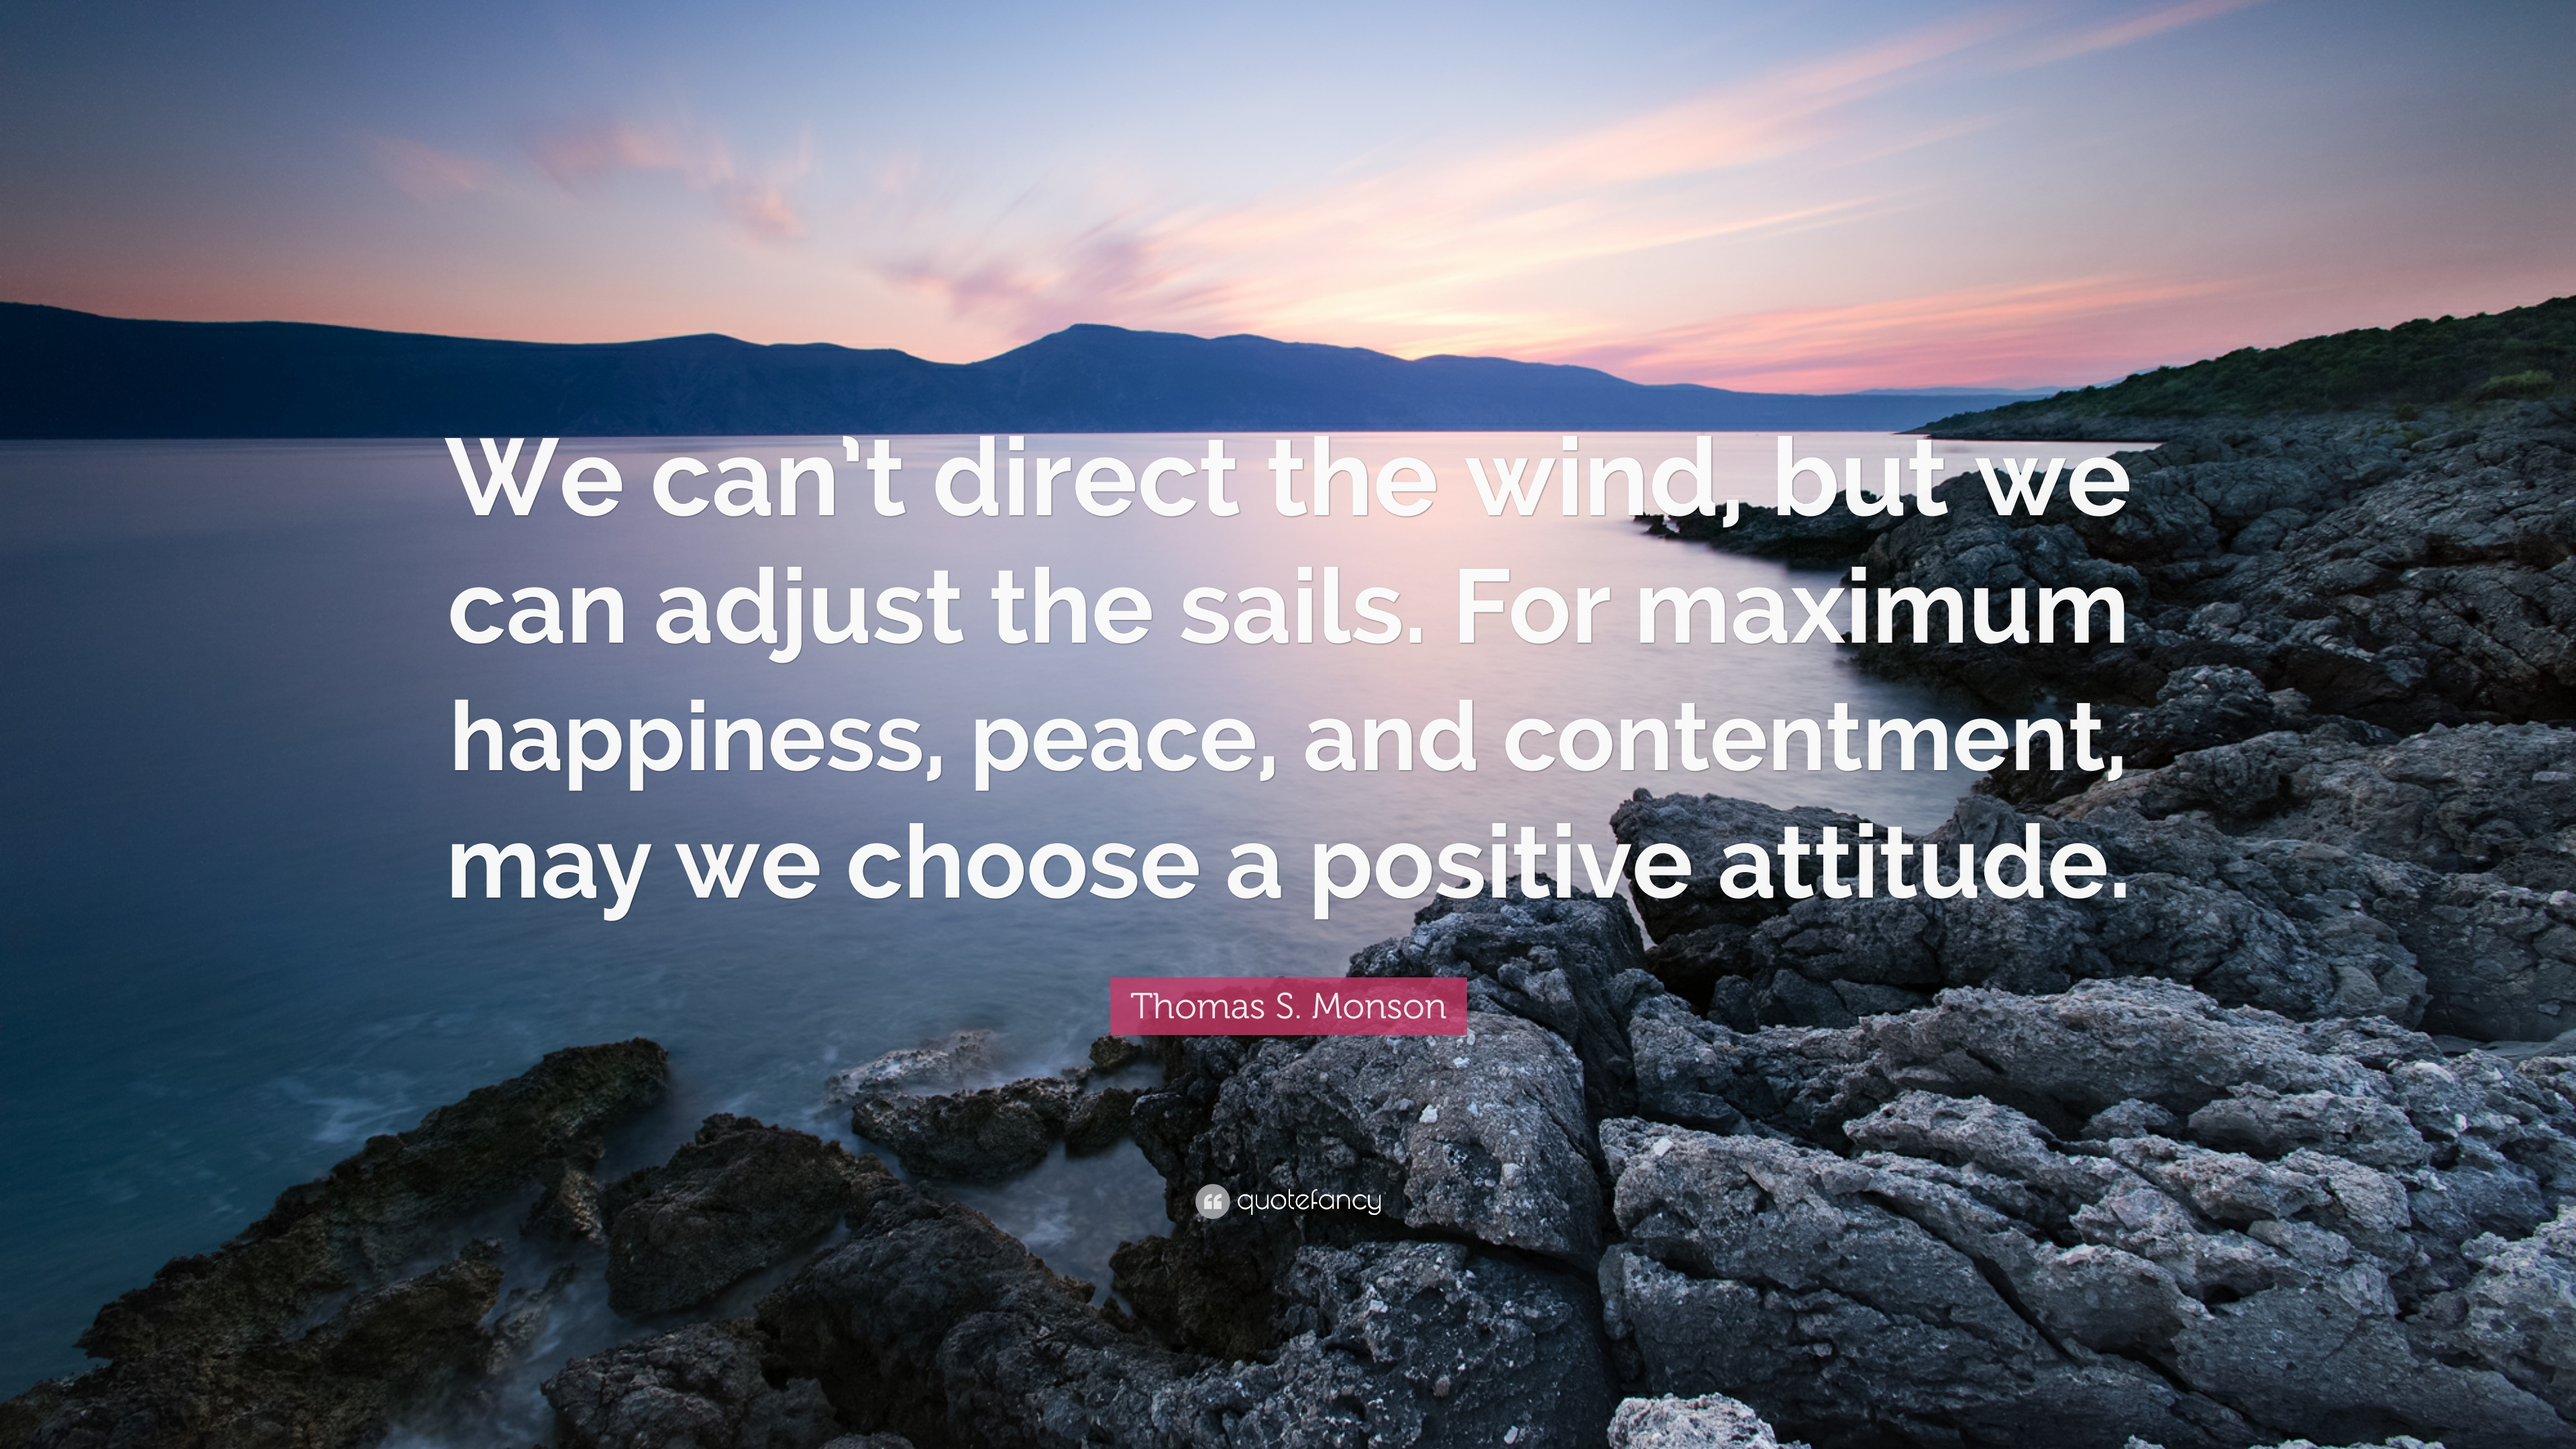 Thomas S Monson Quote We Cant Direct The Wind But We Can Adjust